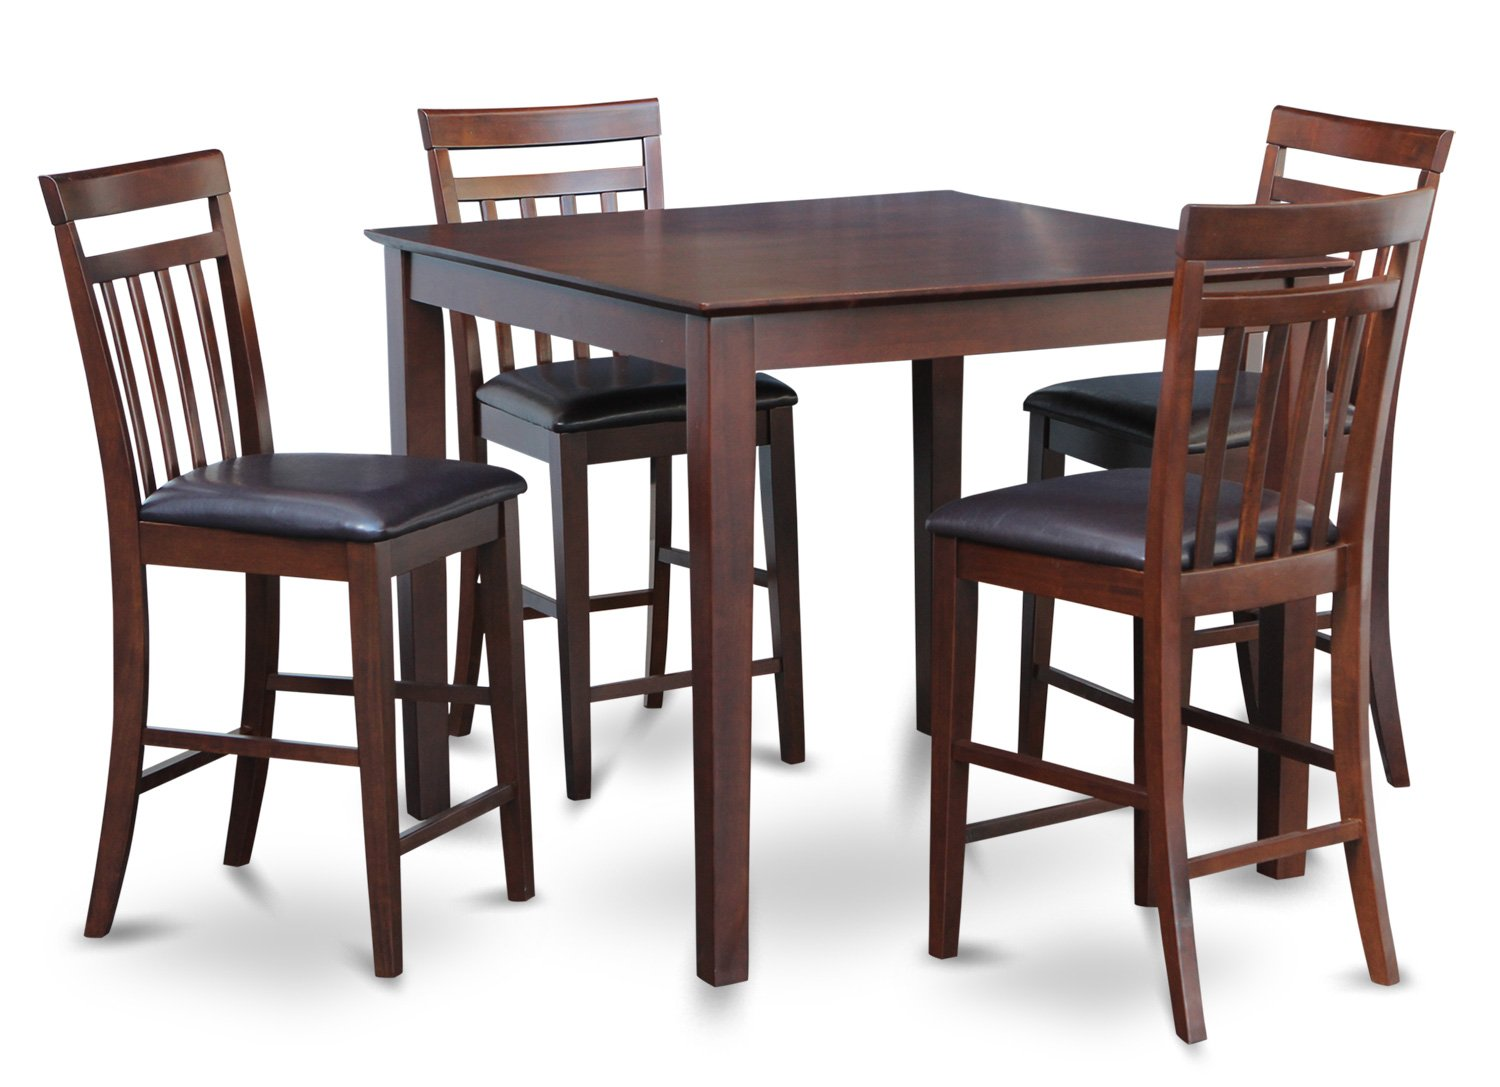 East West 5 Pc Square Pub Counter Height Table Dinette Set